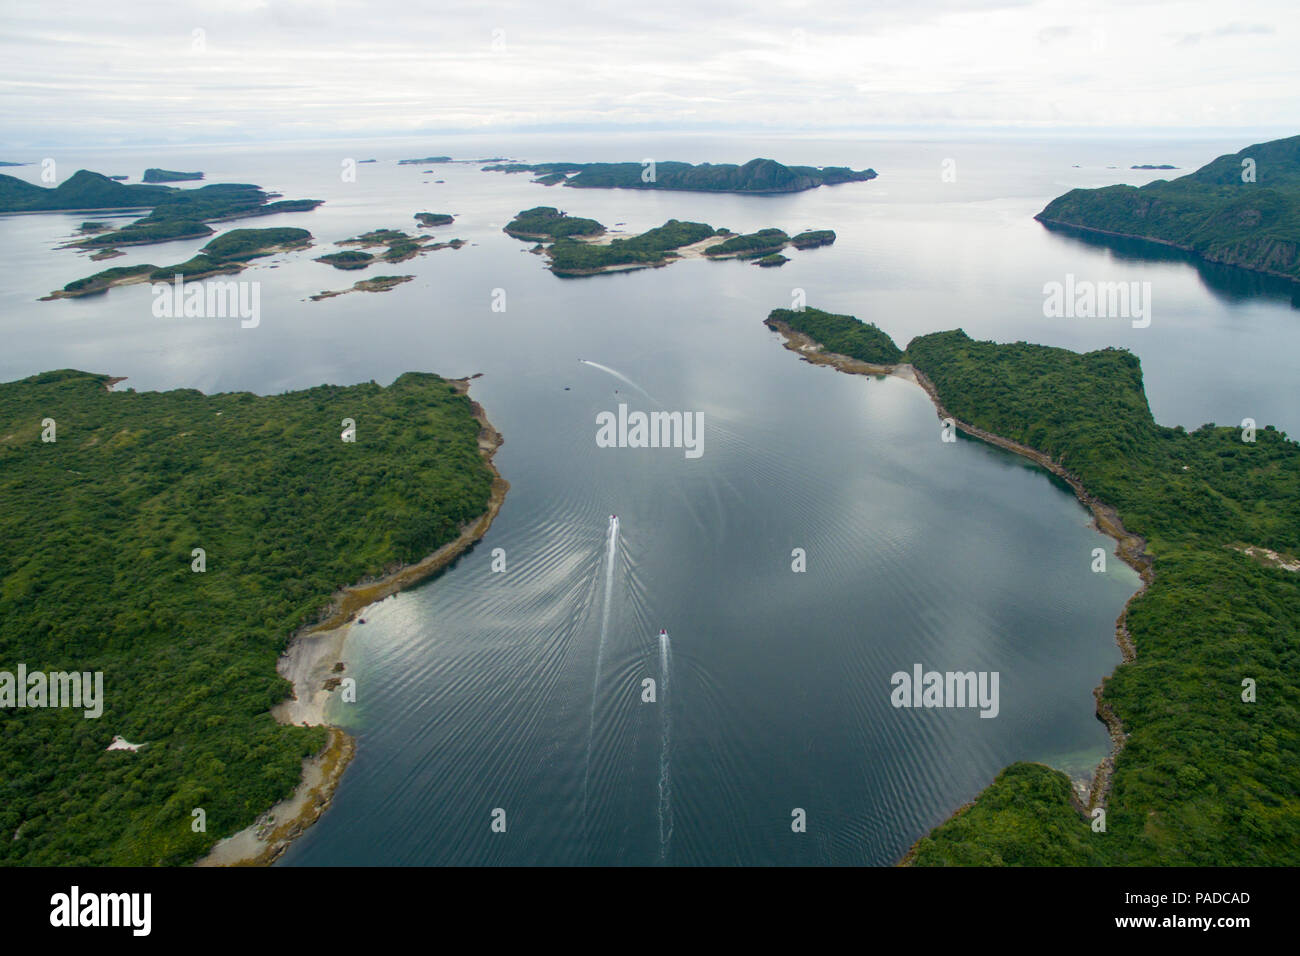 Two small boats in Geographic Harbor, Alaska, USA - Stock Image